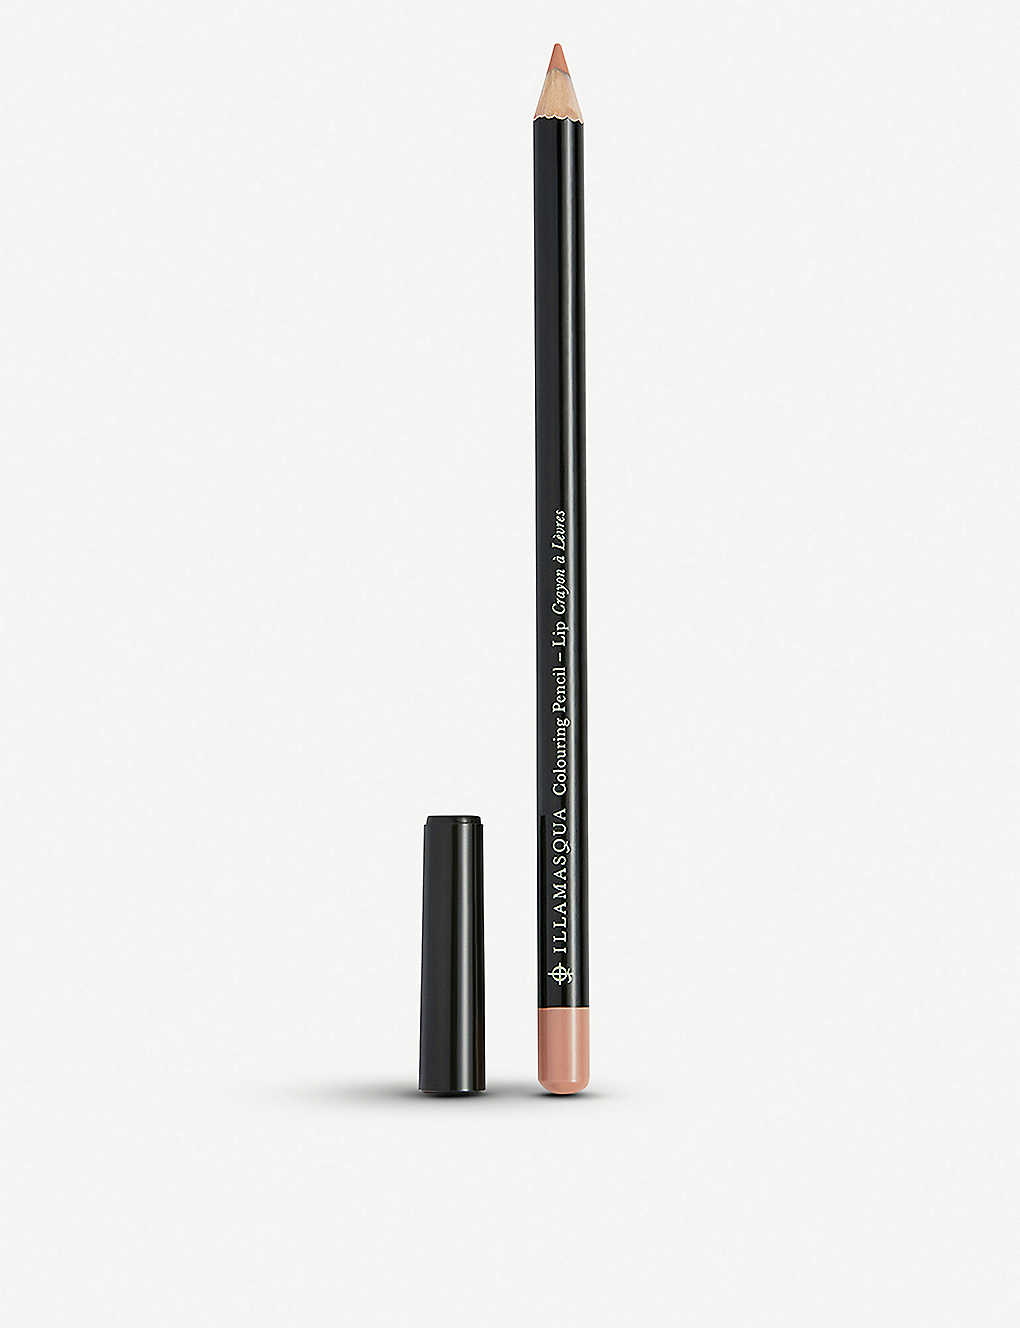 ILLAMASQUA: Ready to Bare lip colouring pencil 1.4g